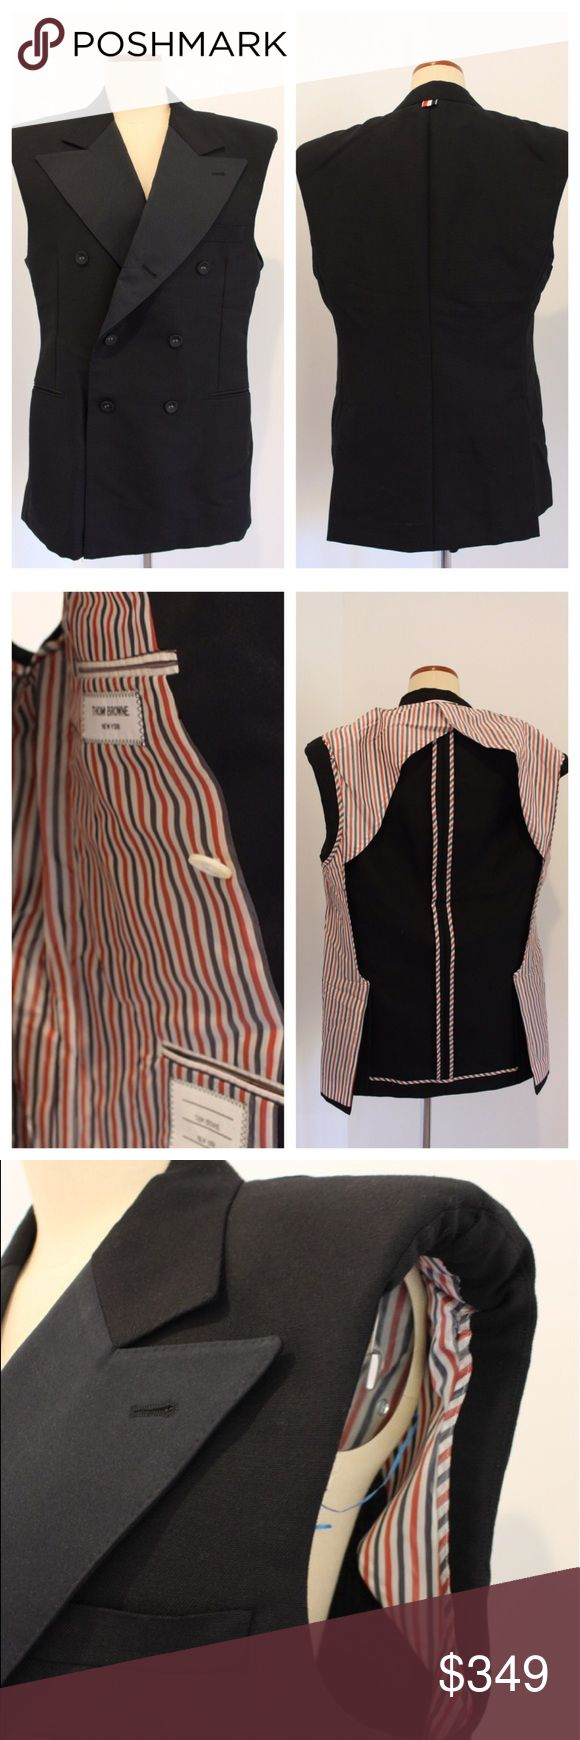 Thom Browne Men's Formal Vest Size 2 Authentic Thom Browne Formal Vest (sleeveless jacket) size 2(men's medium) in excellent condition. Just a few times worn. Thom Browne Jackets & Coats Vests